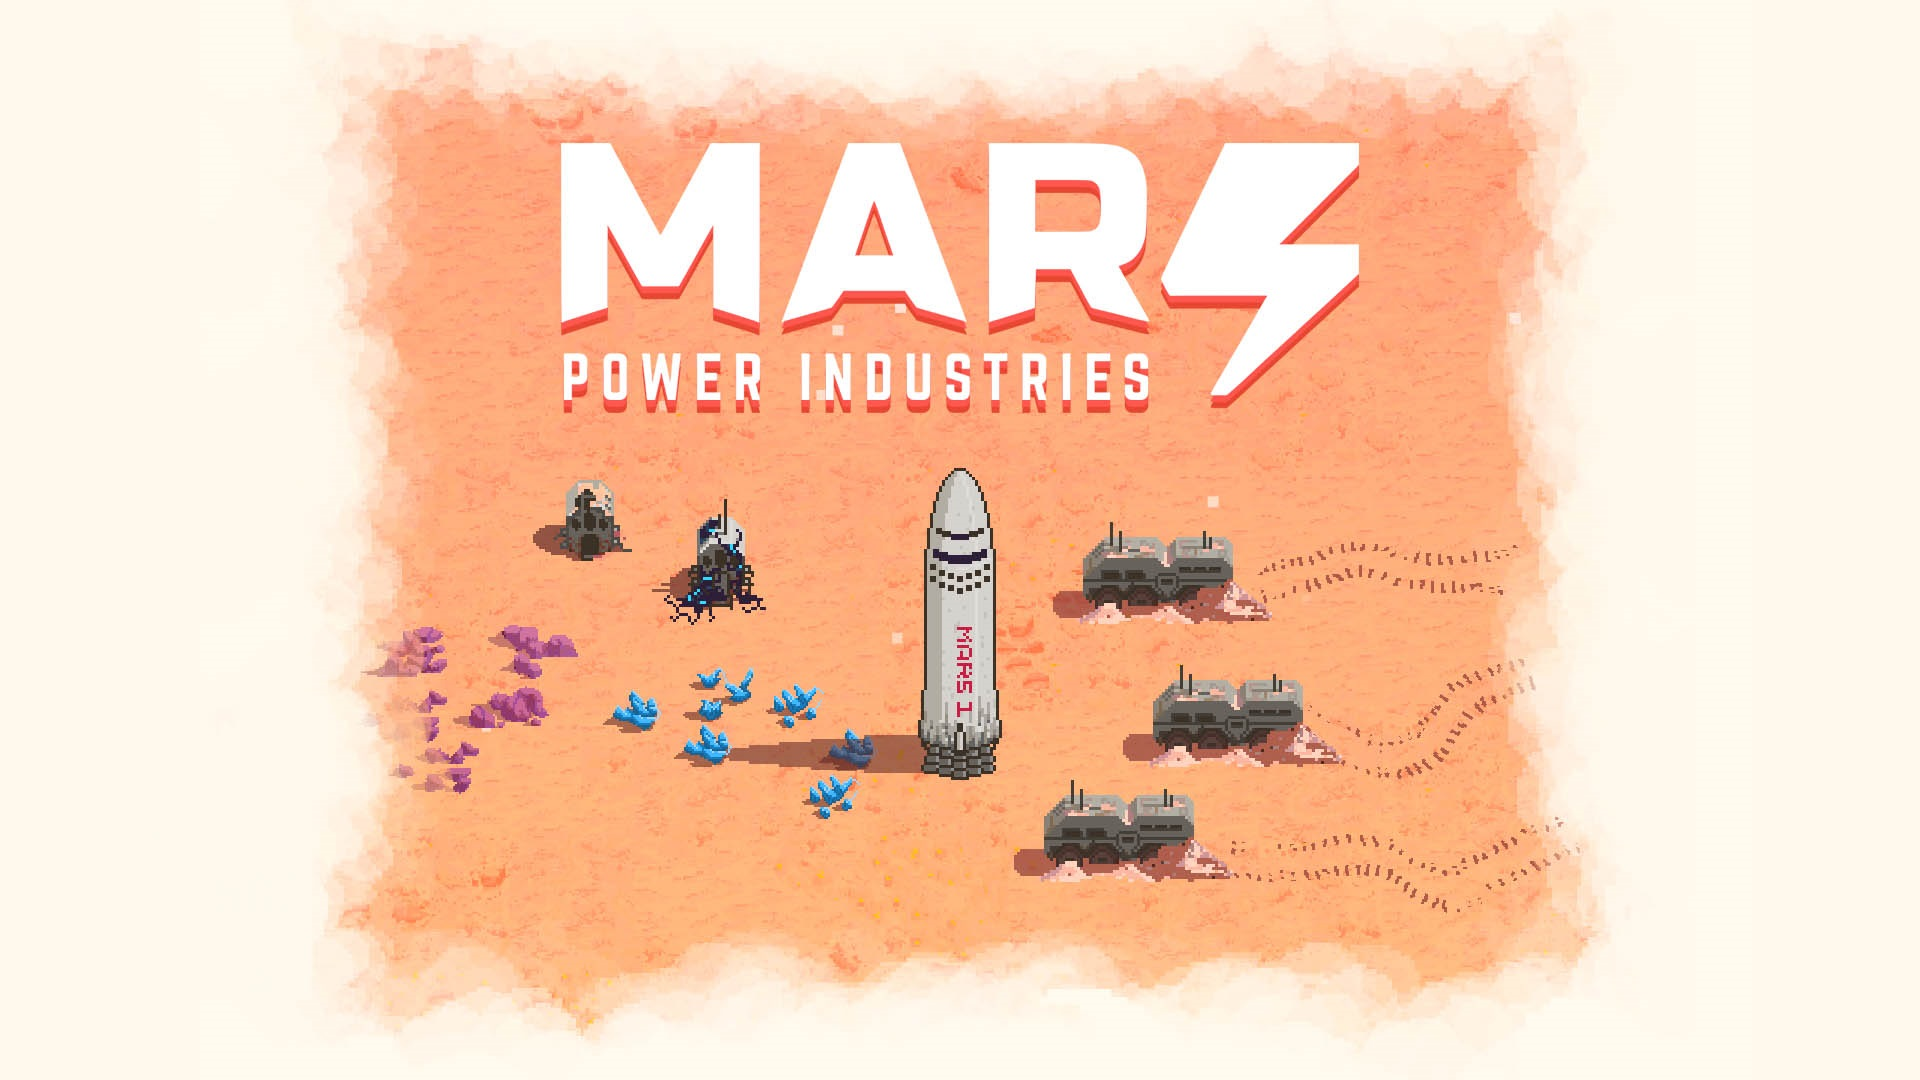 Mars Power Industries logo